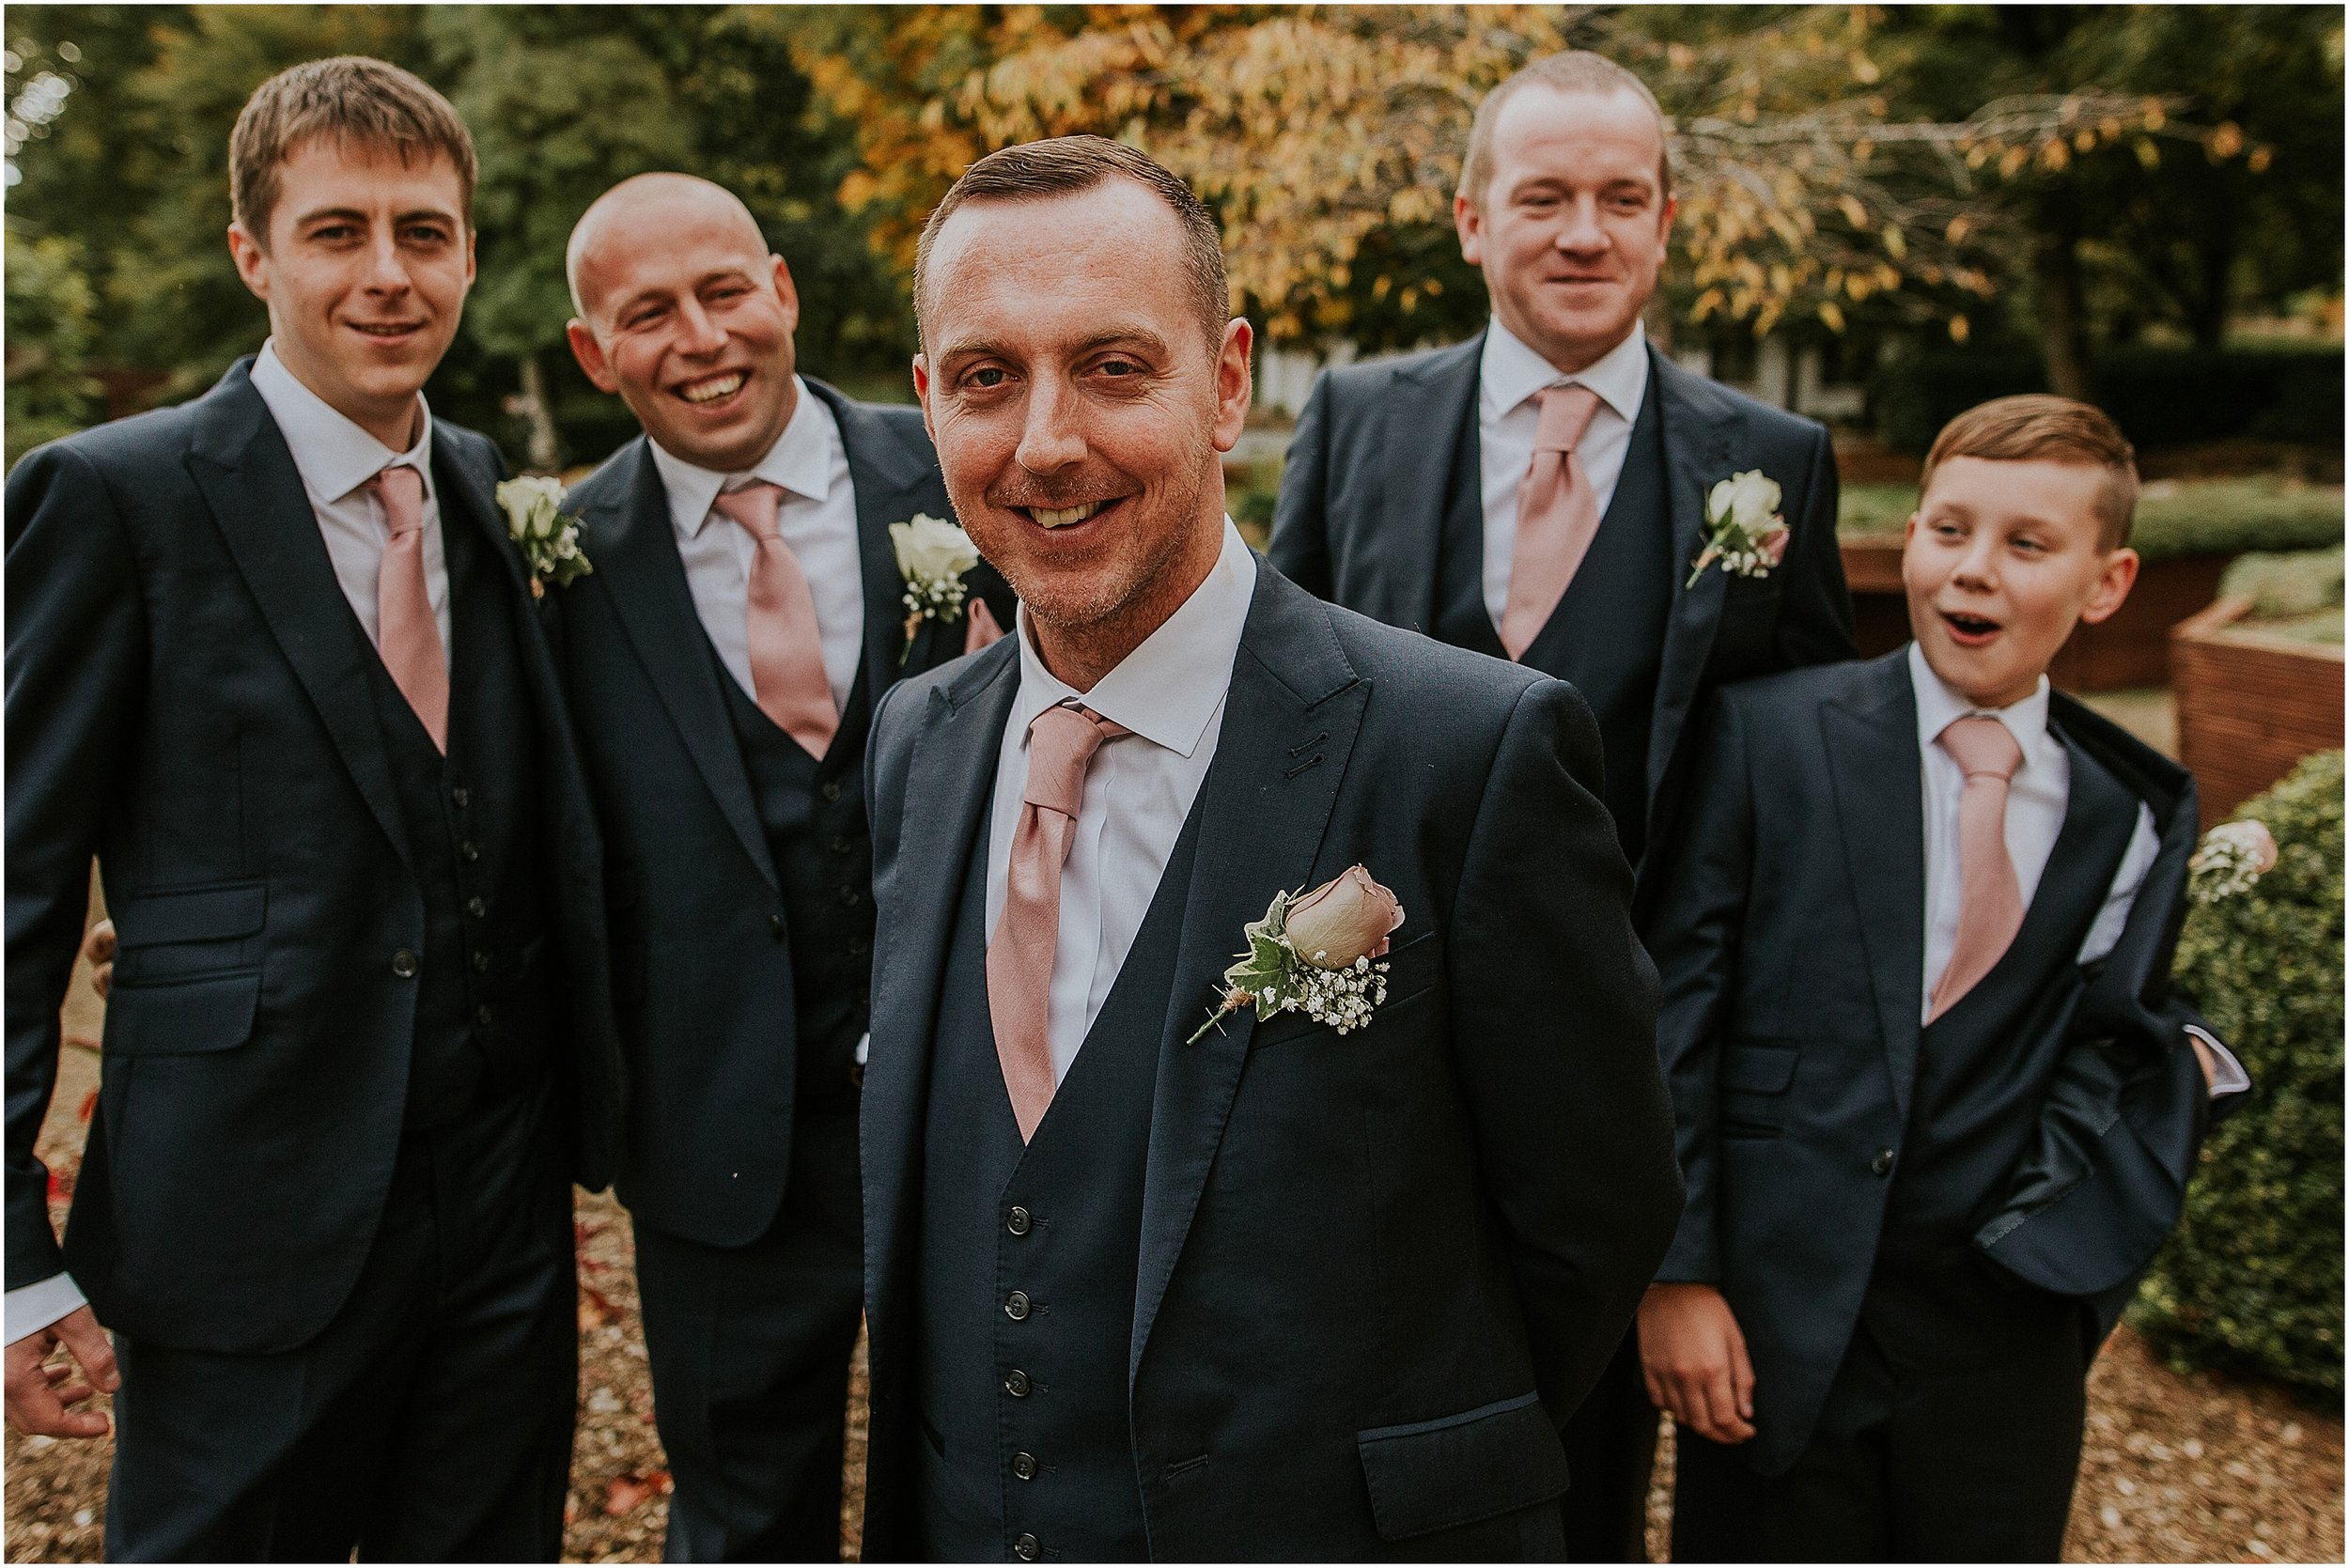 Northern Ireland Wedding Photographer Moody Boar Palace Stables Autumn Natural_0012.jpg